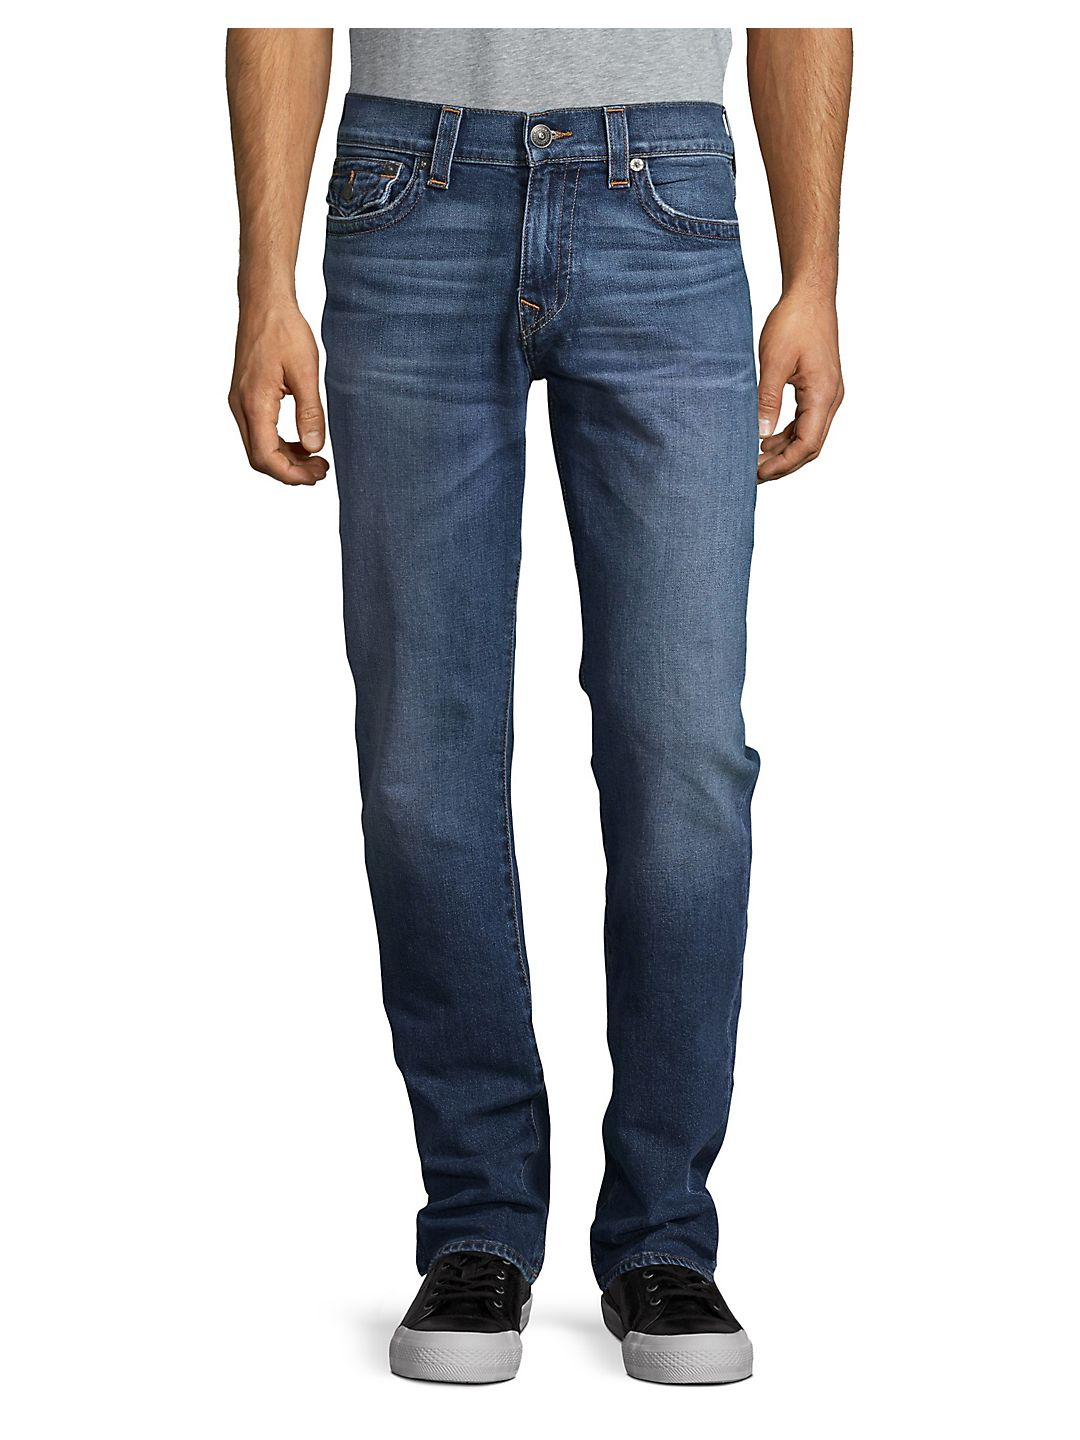 True Religion NEW Blue Mens Size 32 Classic Straight Fit Ricky Jeans